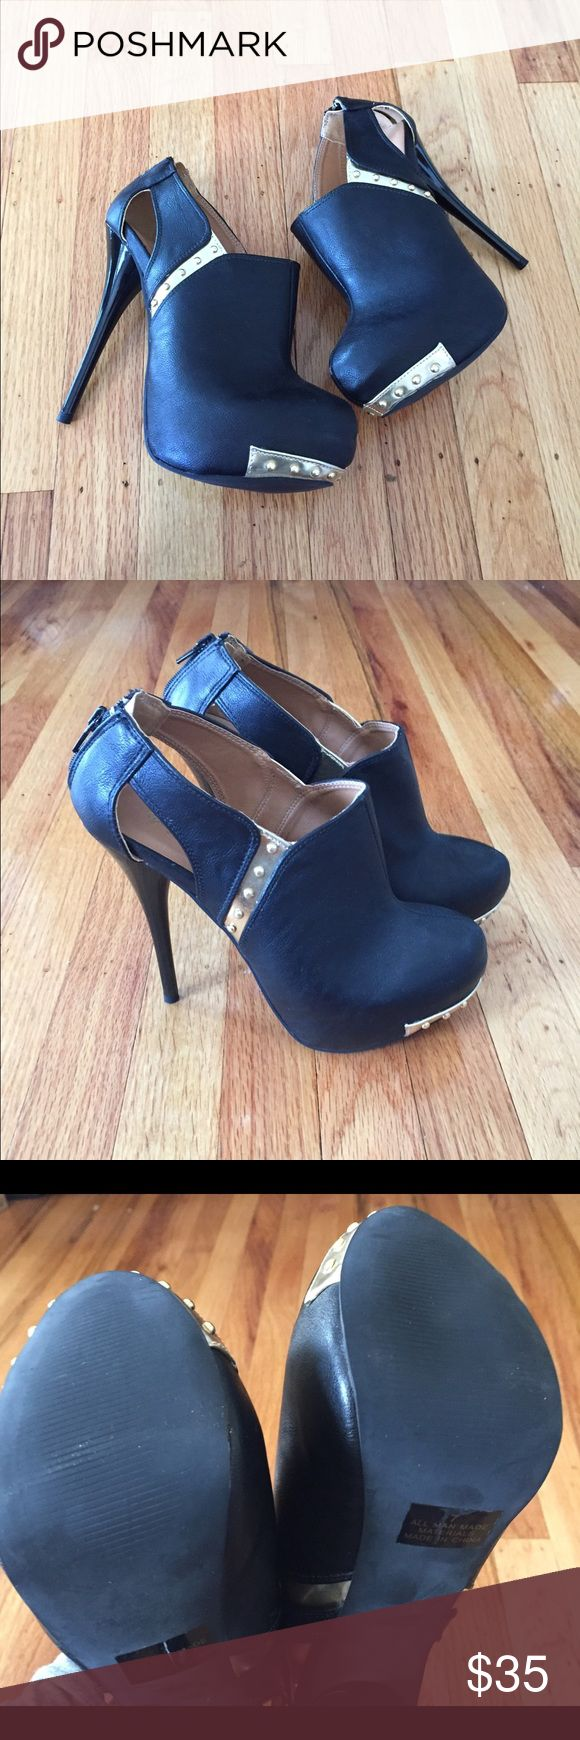 NWOT Black and Gold Stiletto Booties NWOT Black and Gold Stiletto Booties Size 7 Brand New without box Qupid Shoes Ankle Boots & Booties